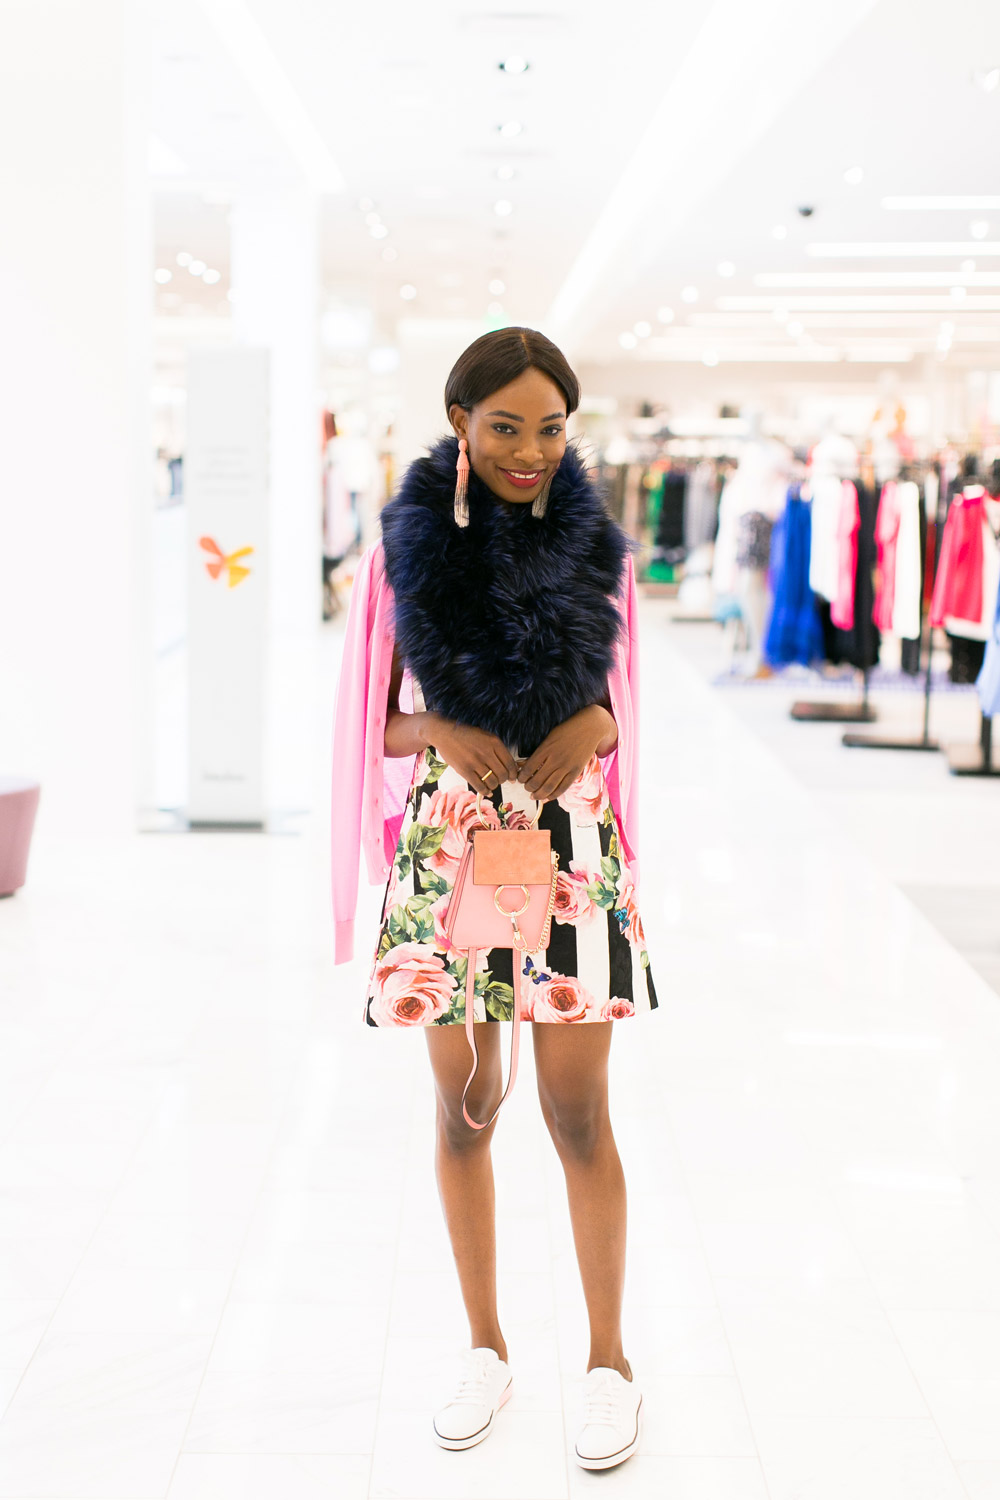 5c7046556d ... Neiman Marcus Spring Trends 2018 Media Preview floral trend on models  ...